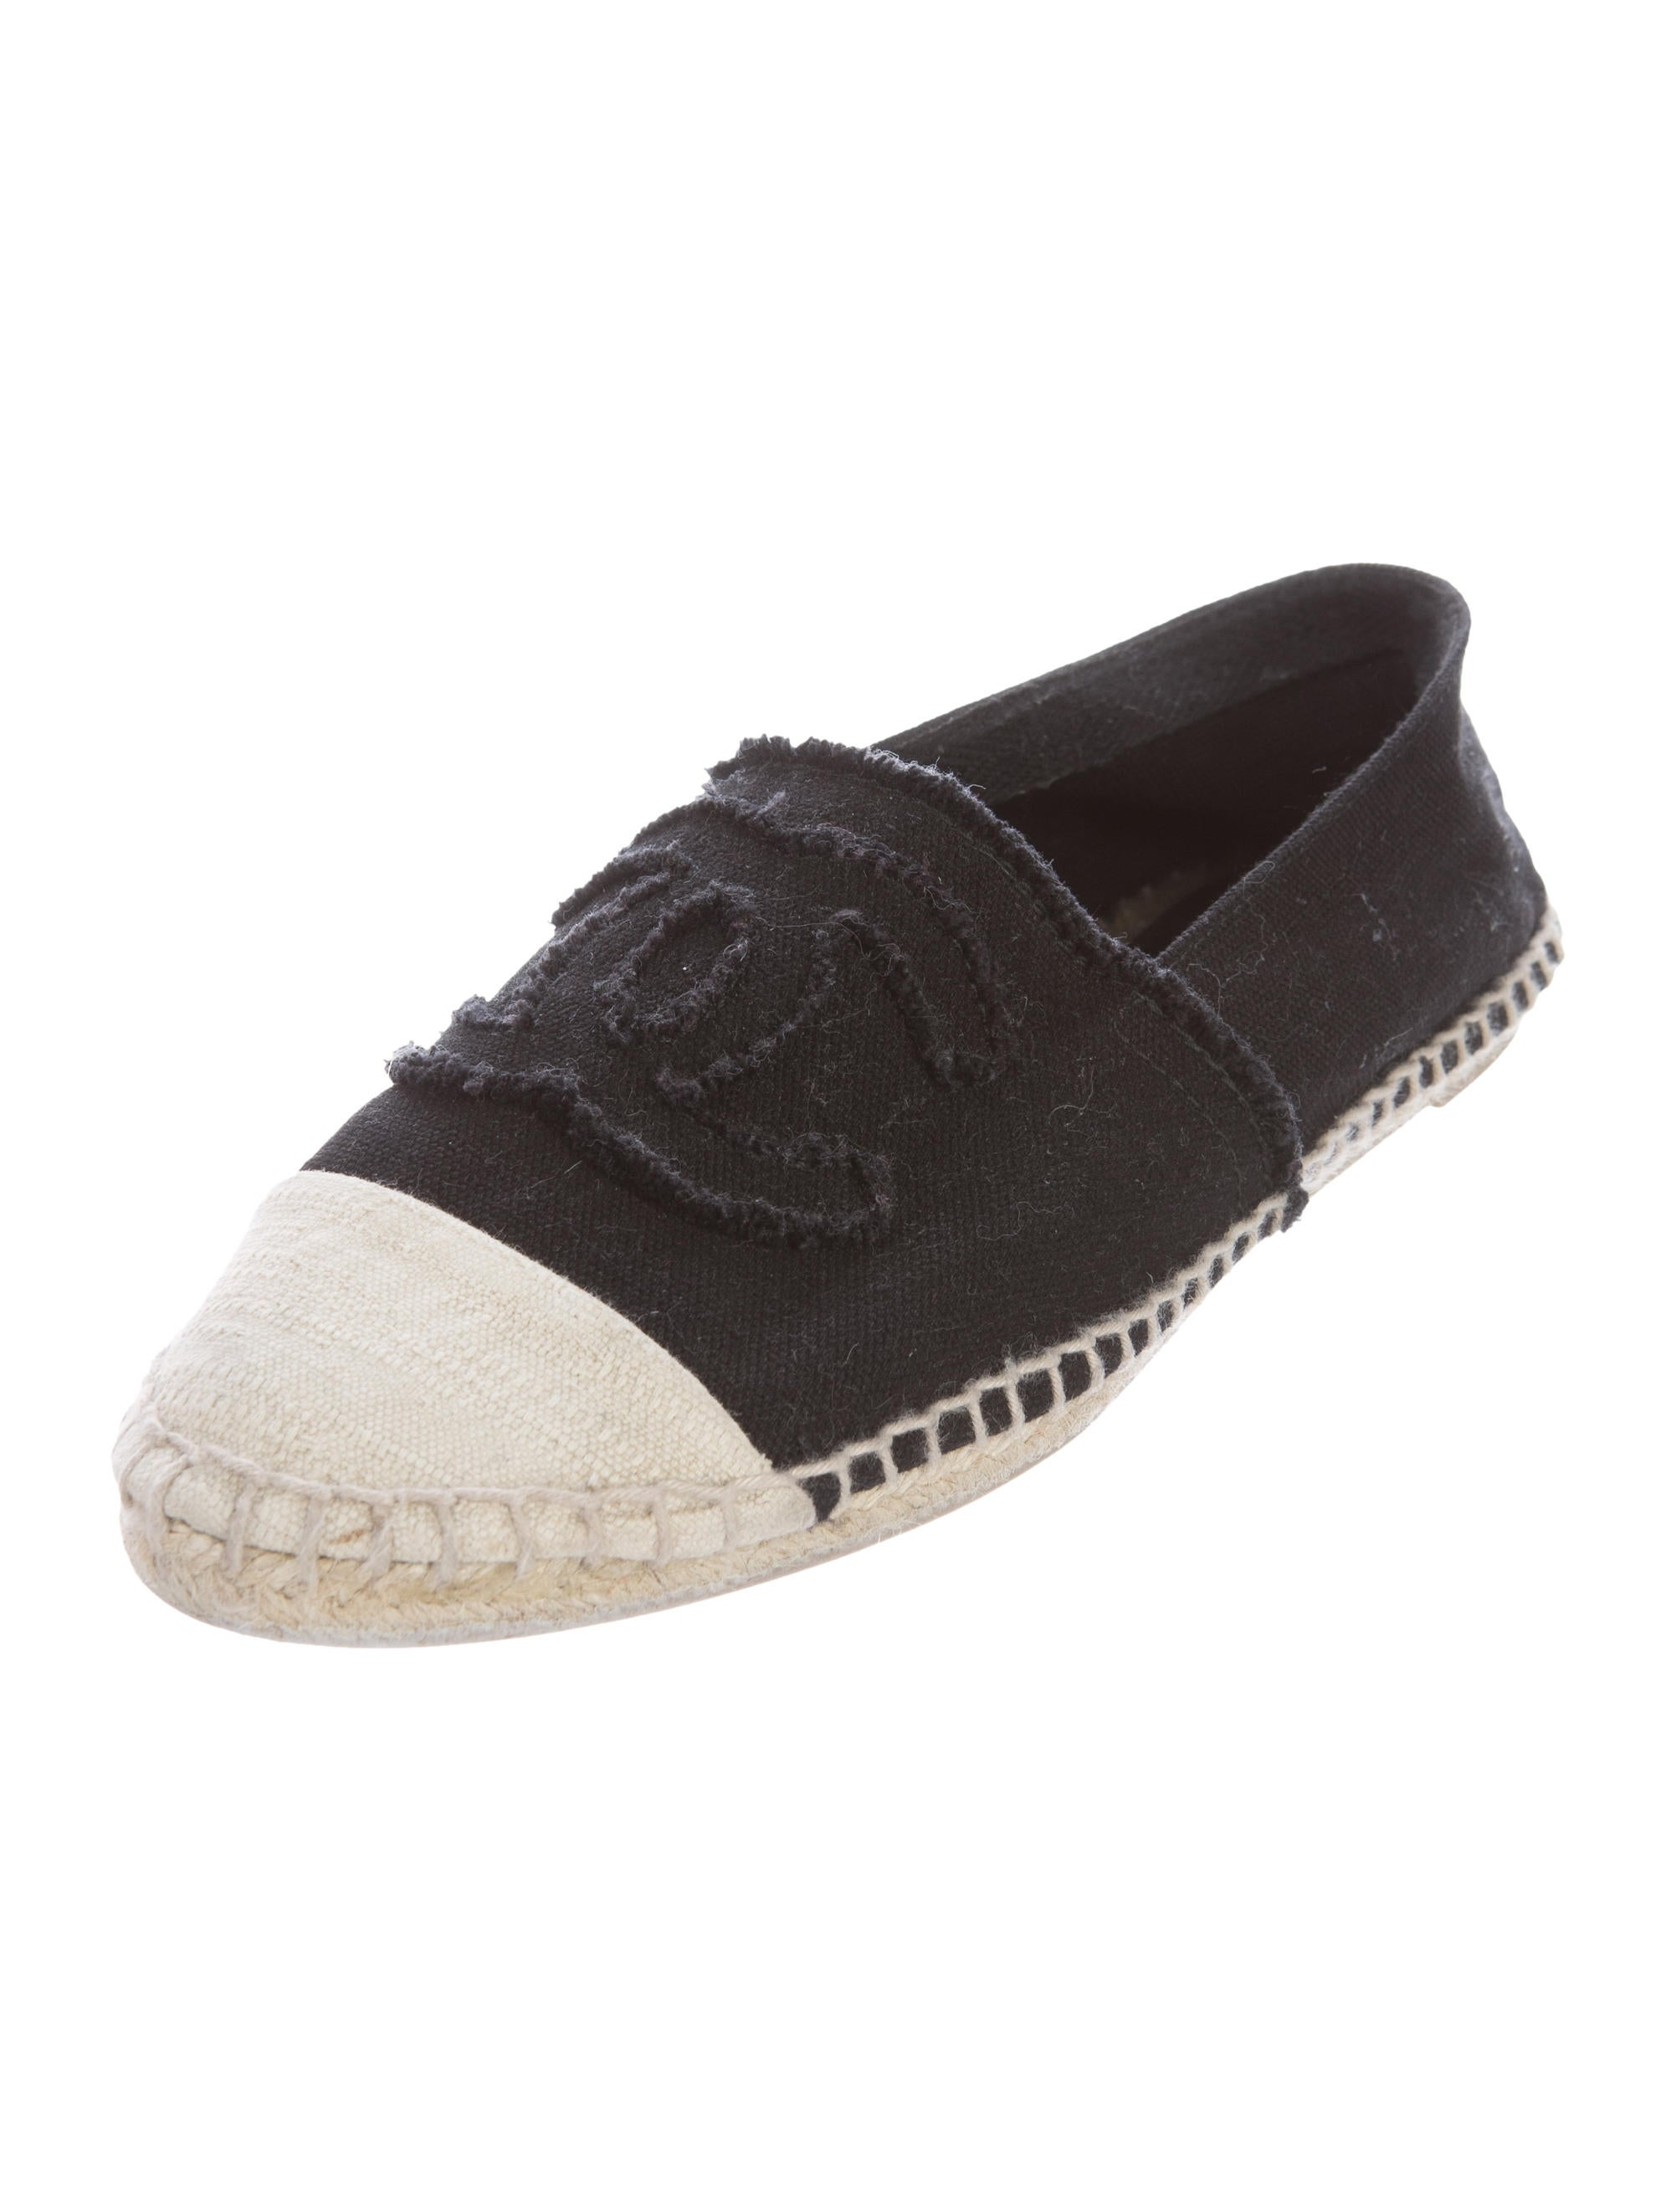 chanel canvas espadrille flats shoes cha169565 the